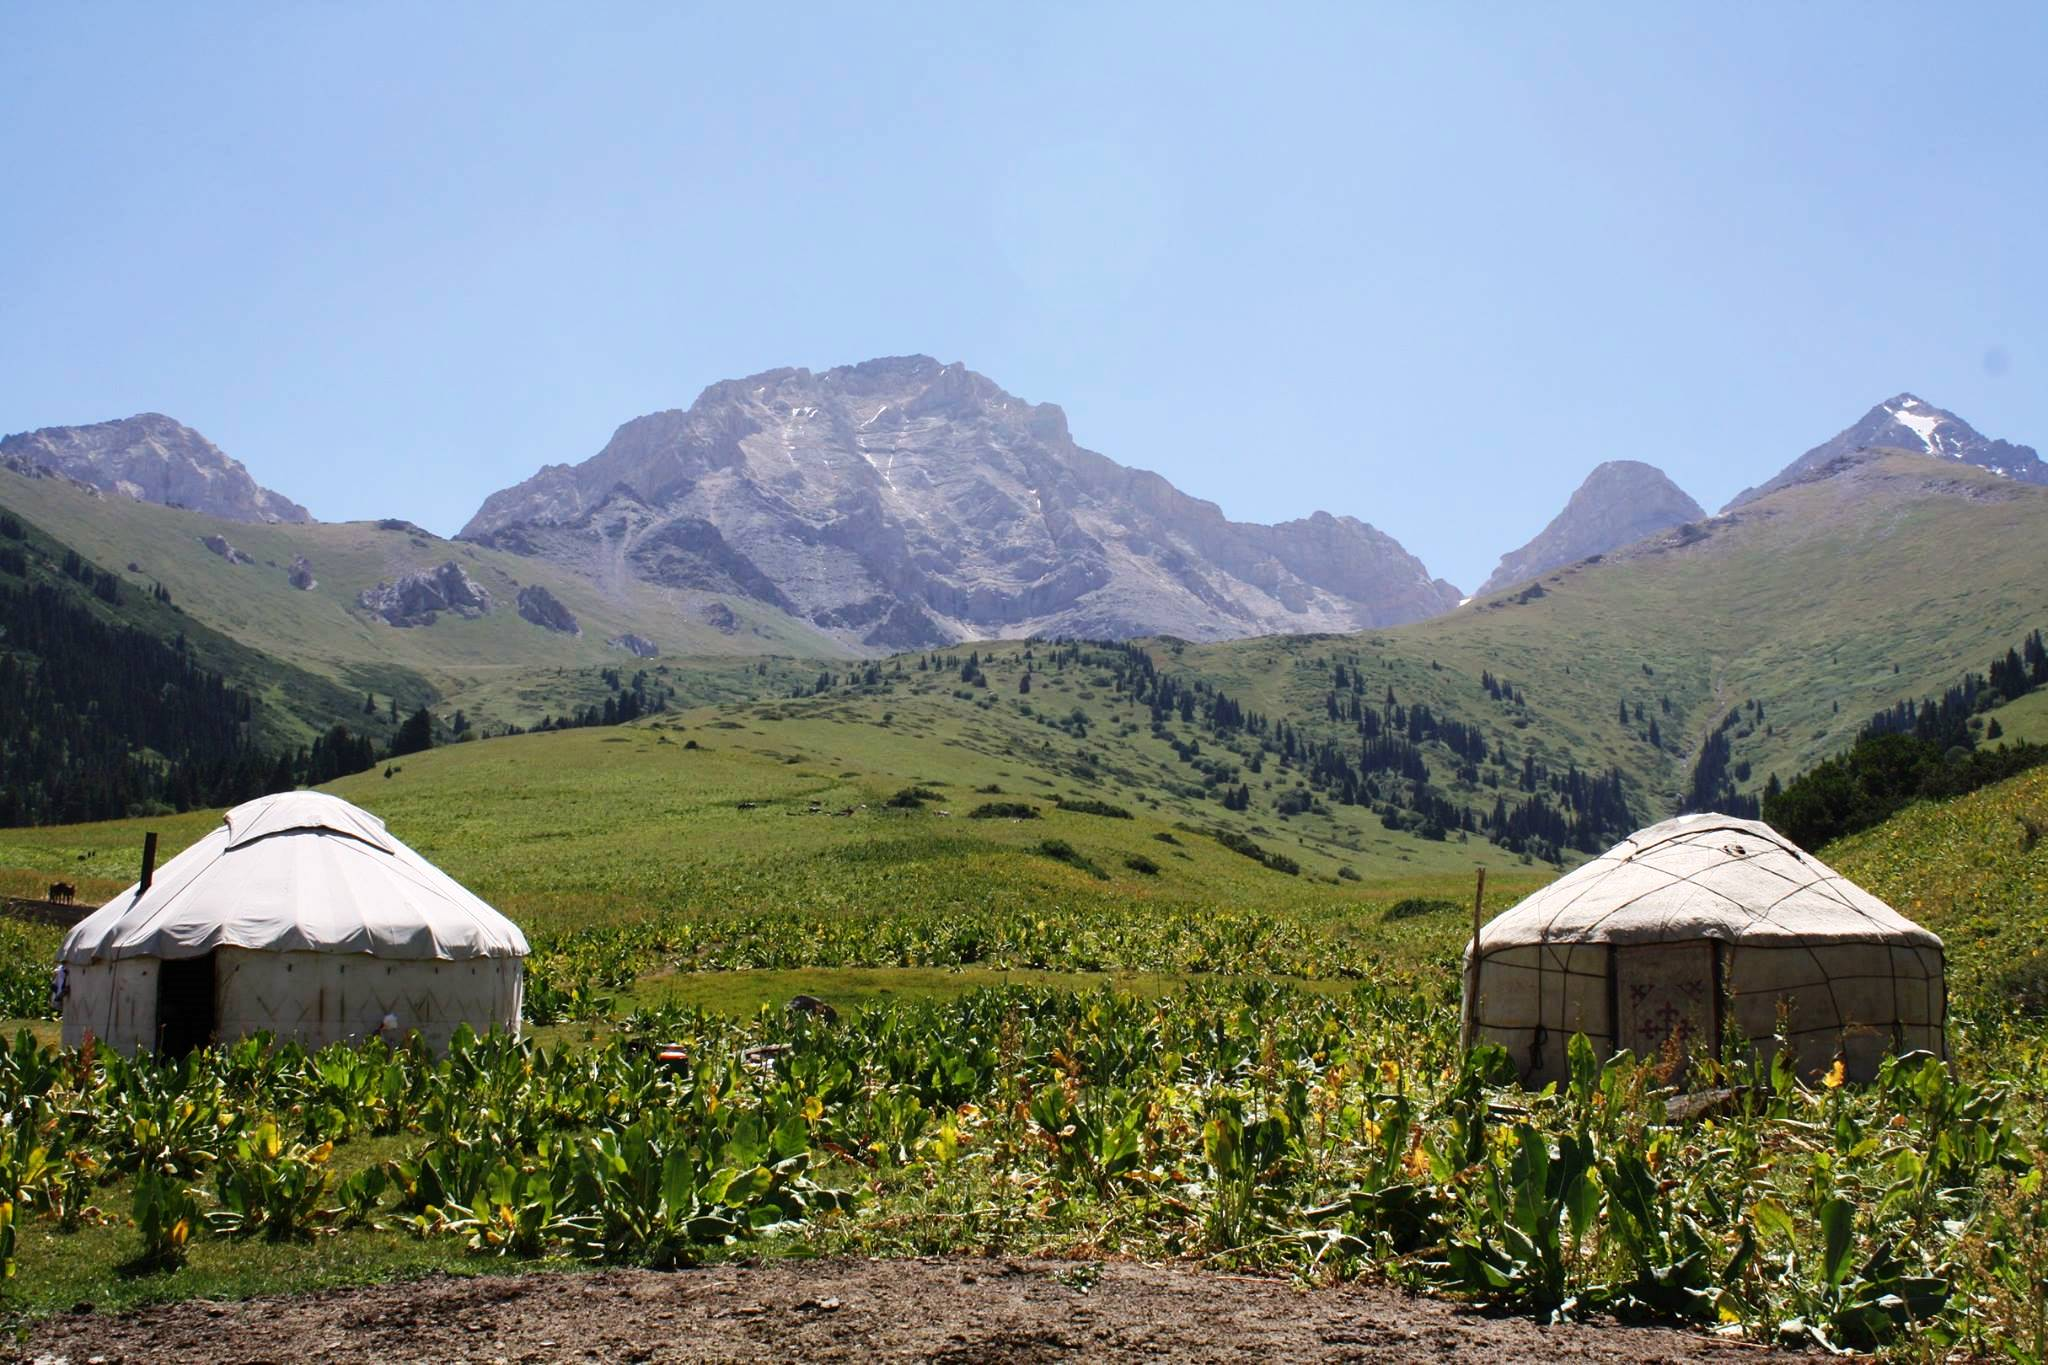 Kochmon Yurt Camp